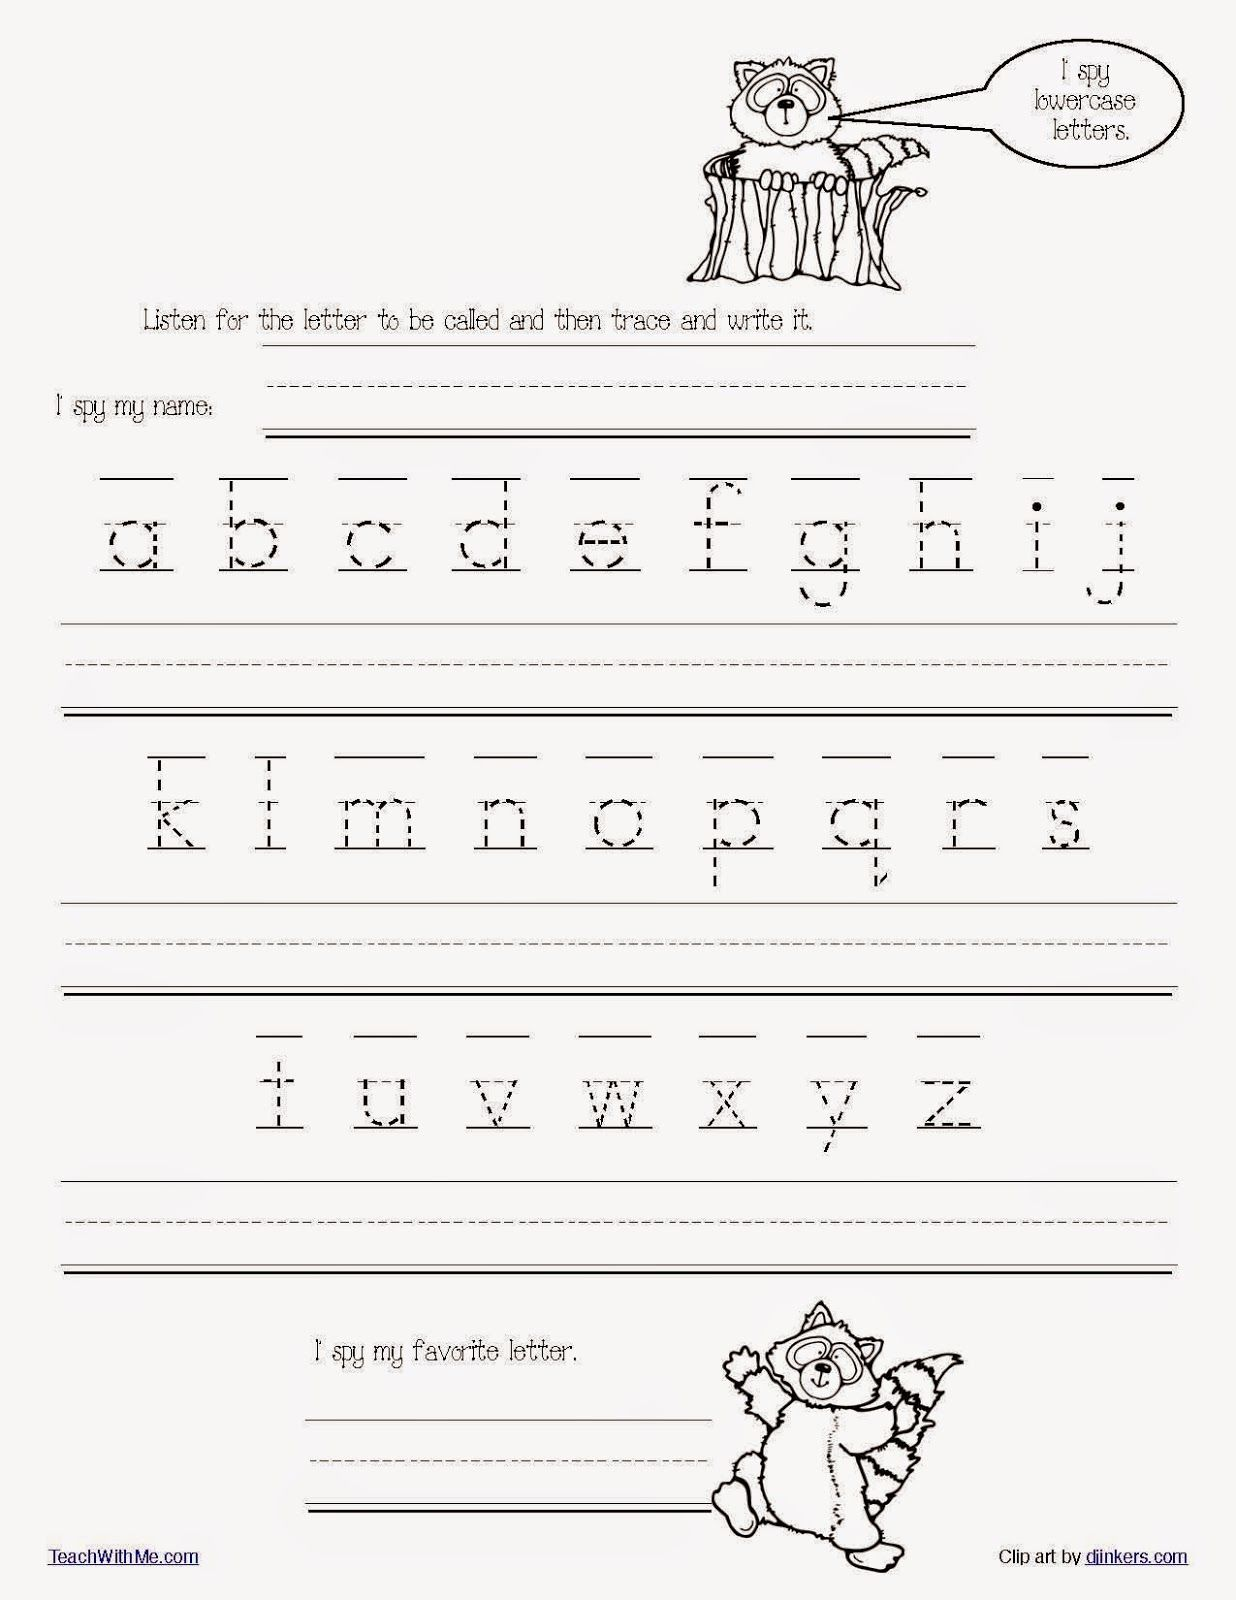 medium resolution of The Kissing Hand Alphabet Games Packet   Handwriting worksheets for  kindergarten